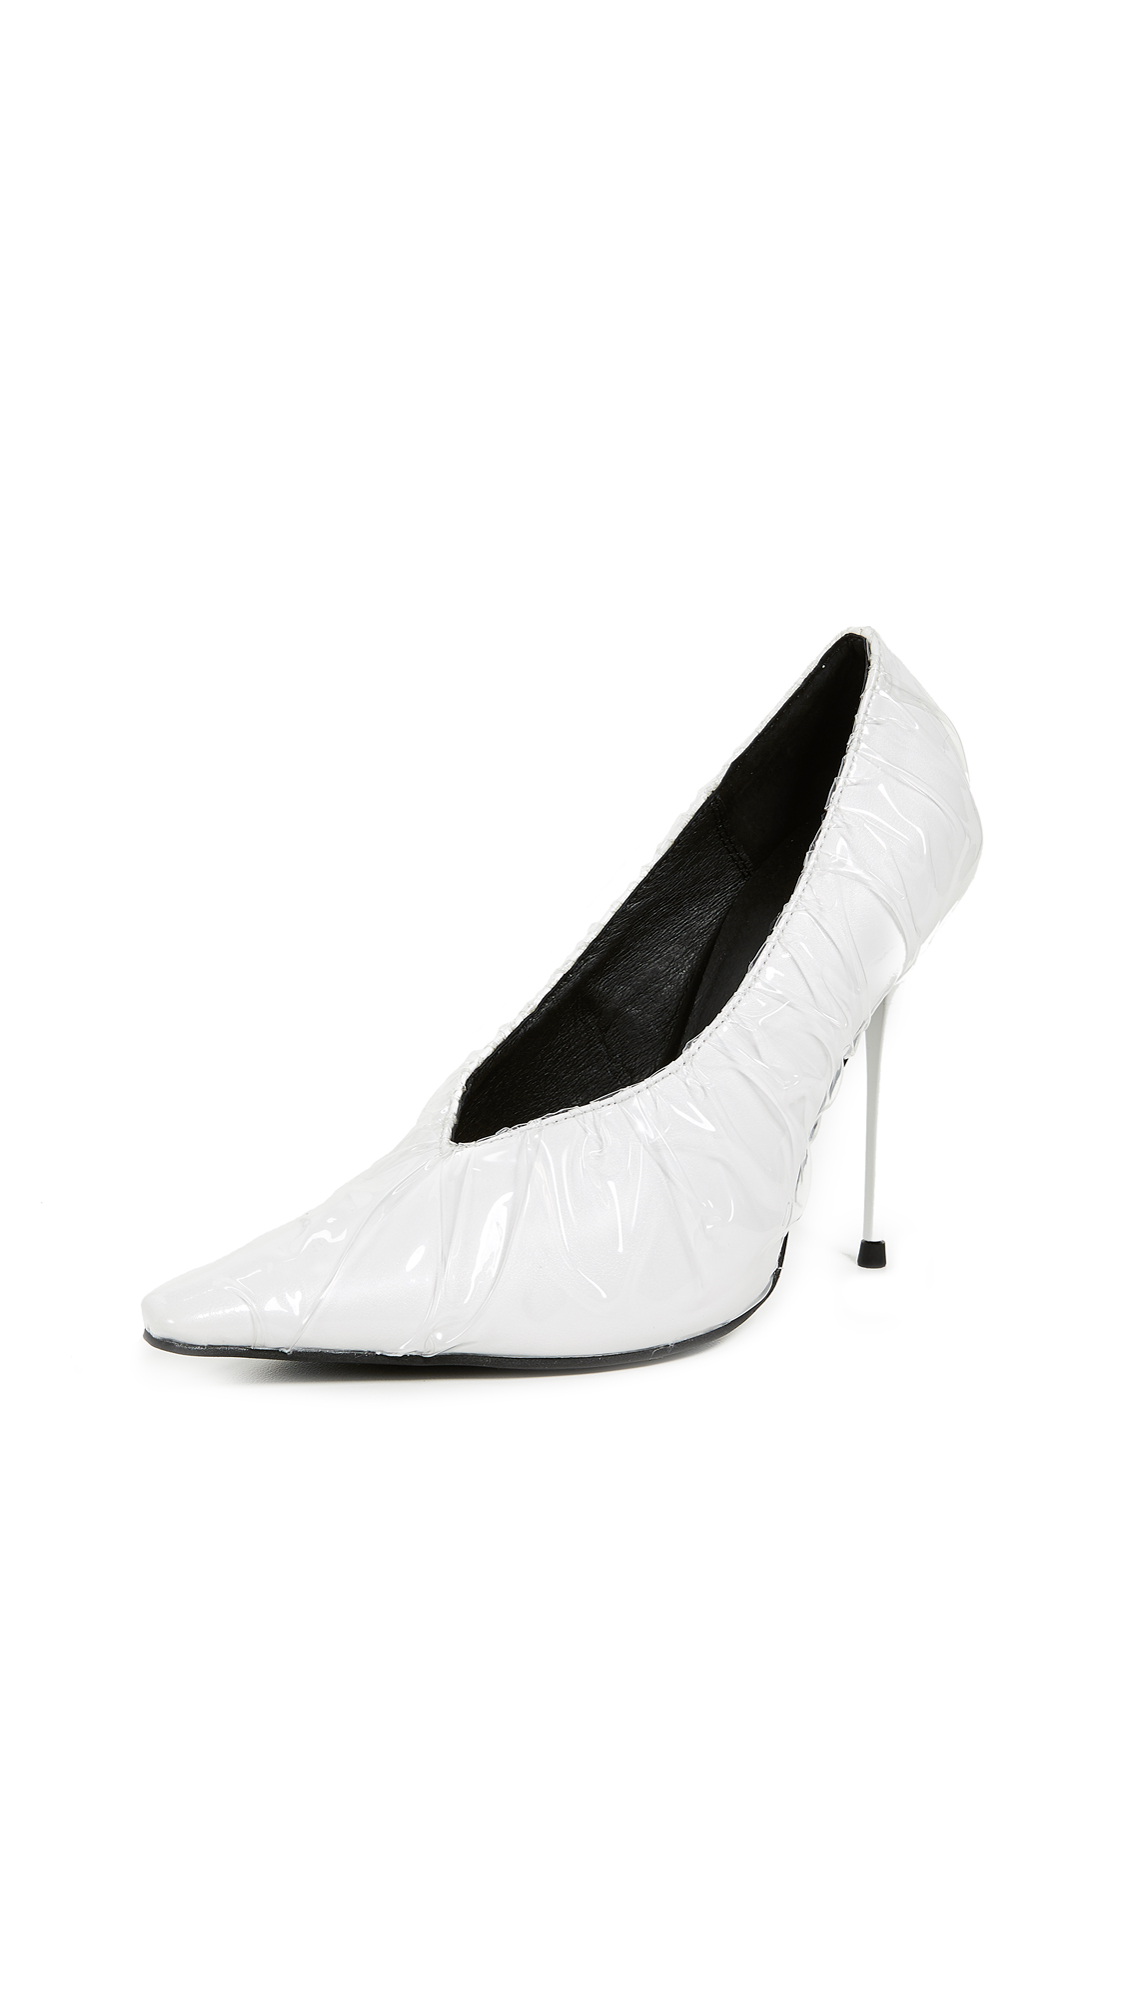 Jeffrey Campbell Ikon 3P Point Toe Pumps - White/Clear